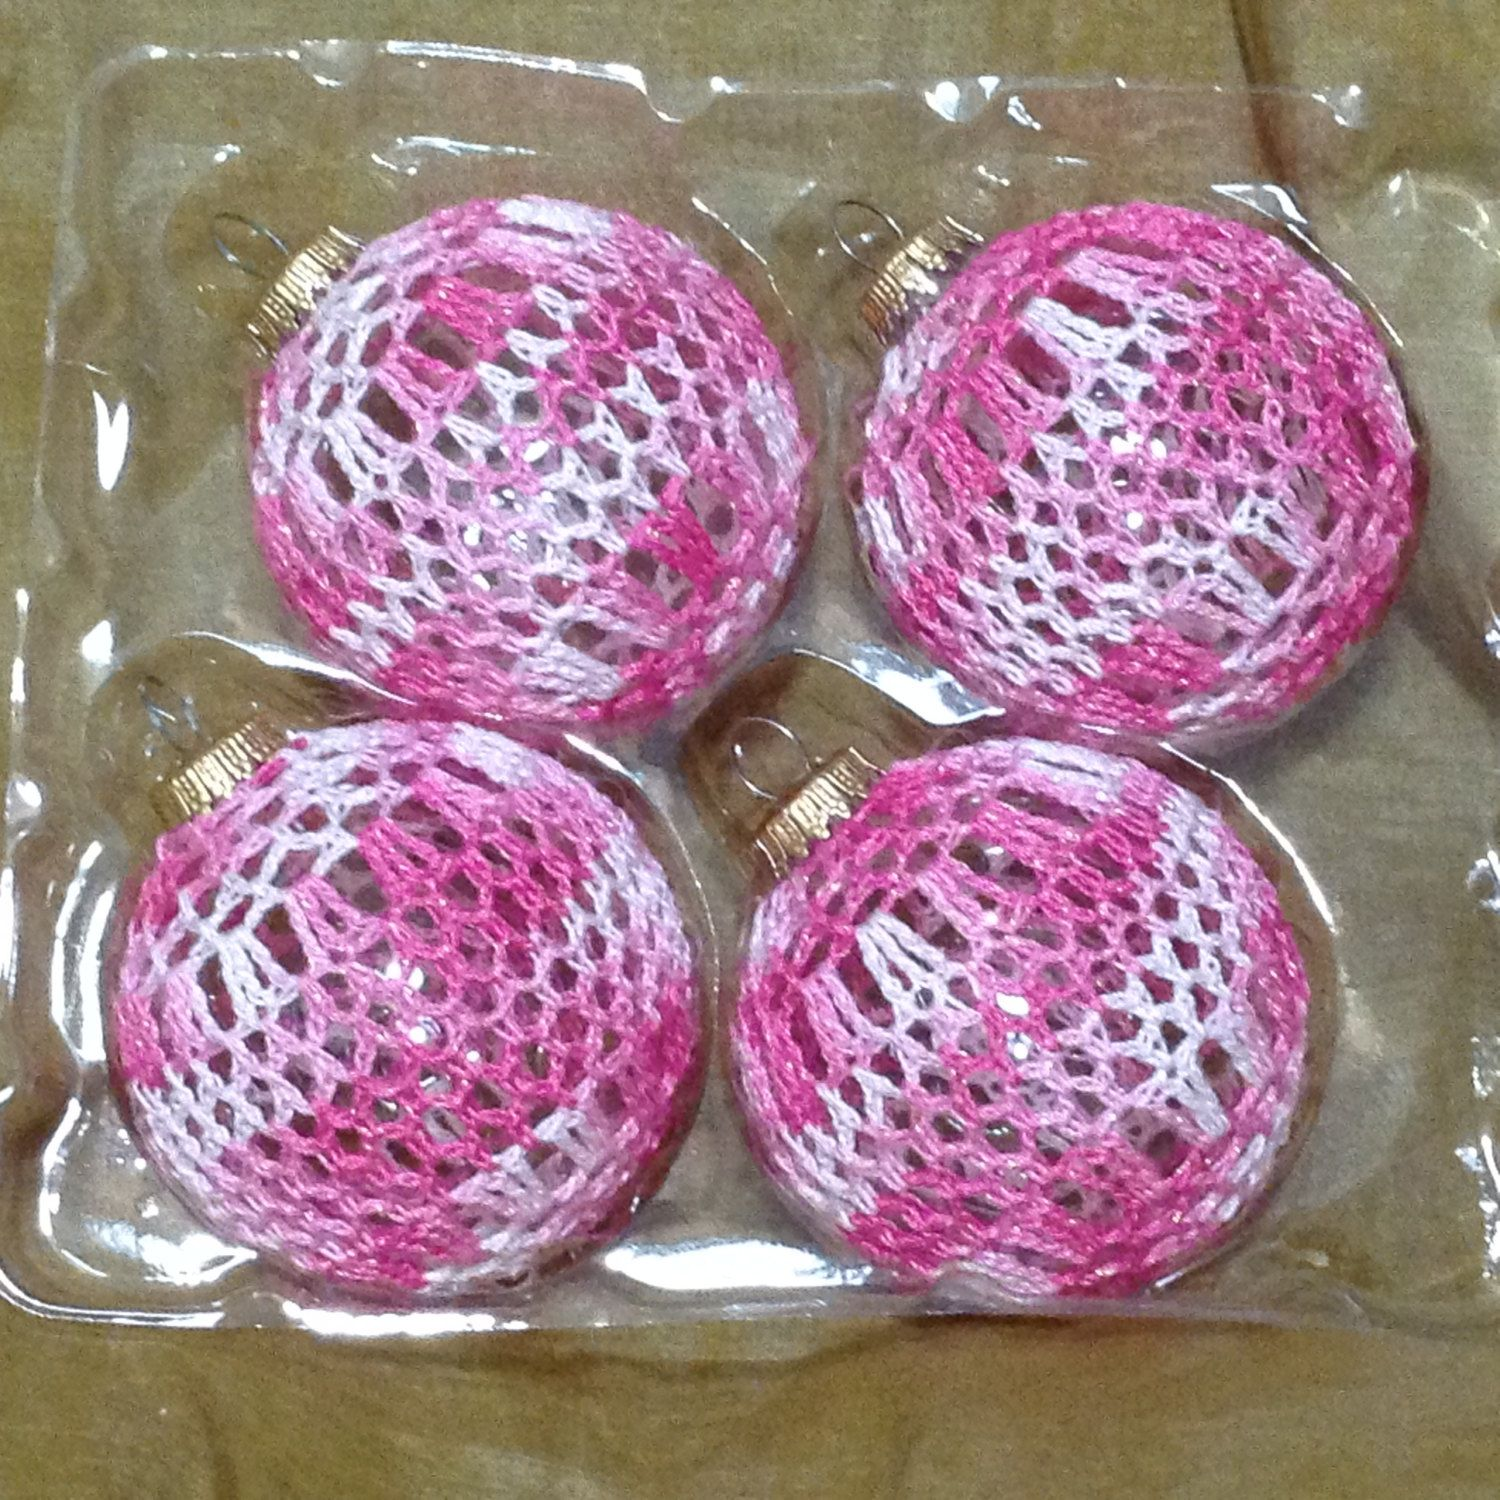 "4 Piece Set of Hand Crocheted 3"" Glass Christmas Ornaments - Wavy Pink & White by KnotsOnTheDouble on Etsy"